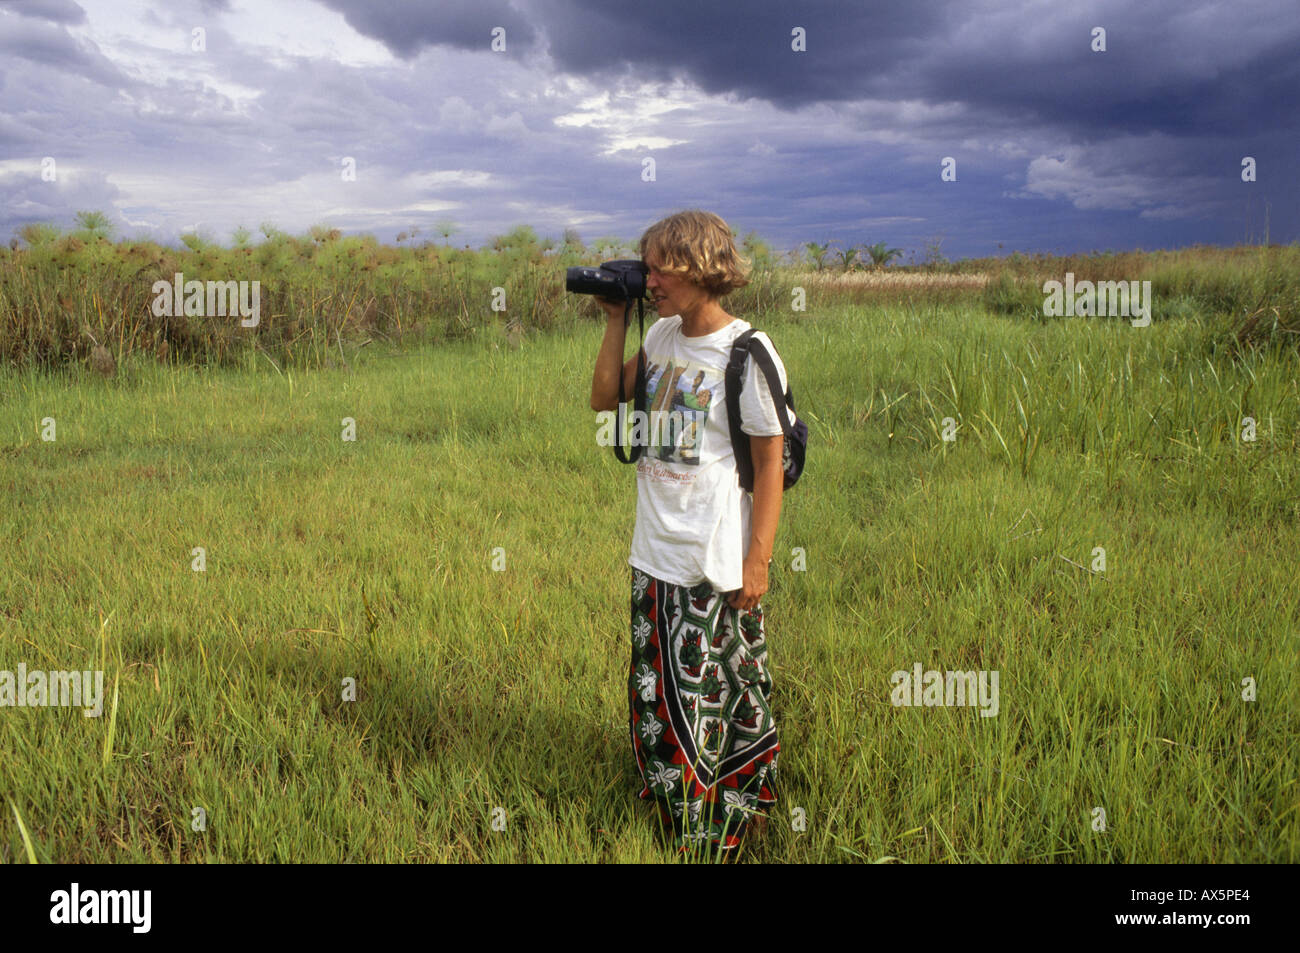 Zambia, Africa. Woman tourist with Olympus camera taking a picture in papyrus reed wetland. - Stock Image